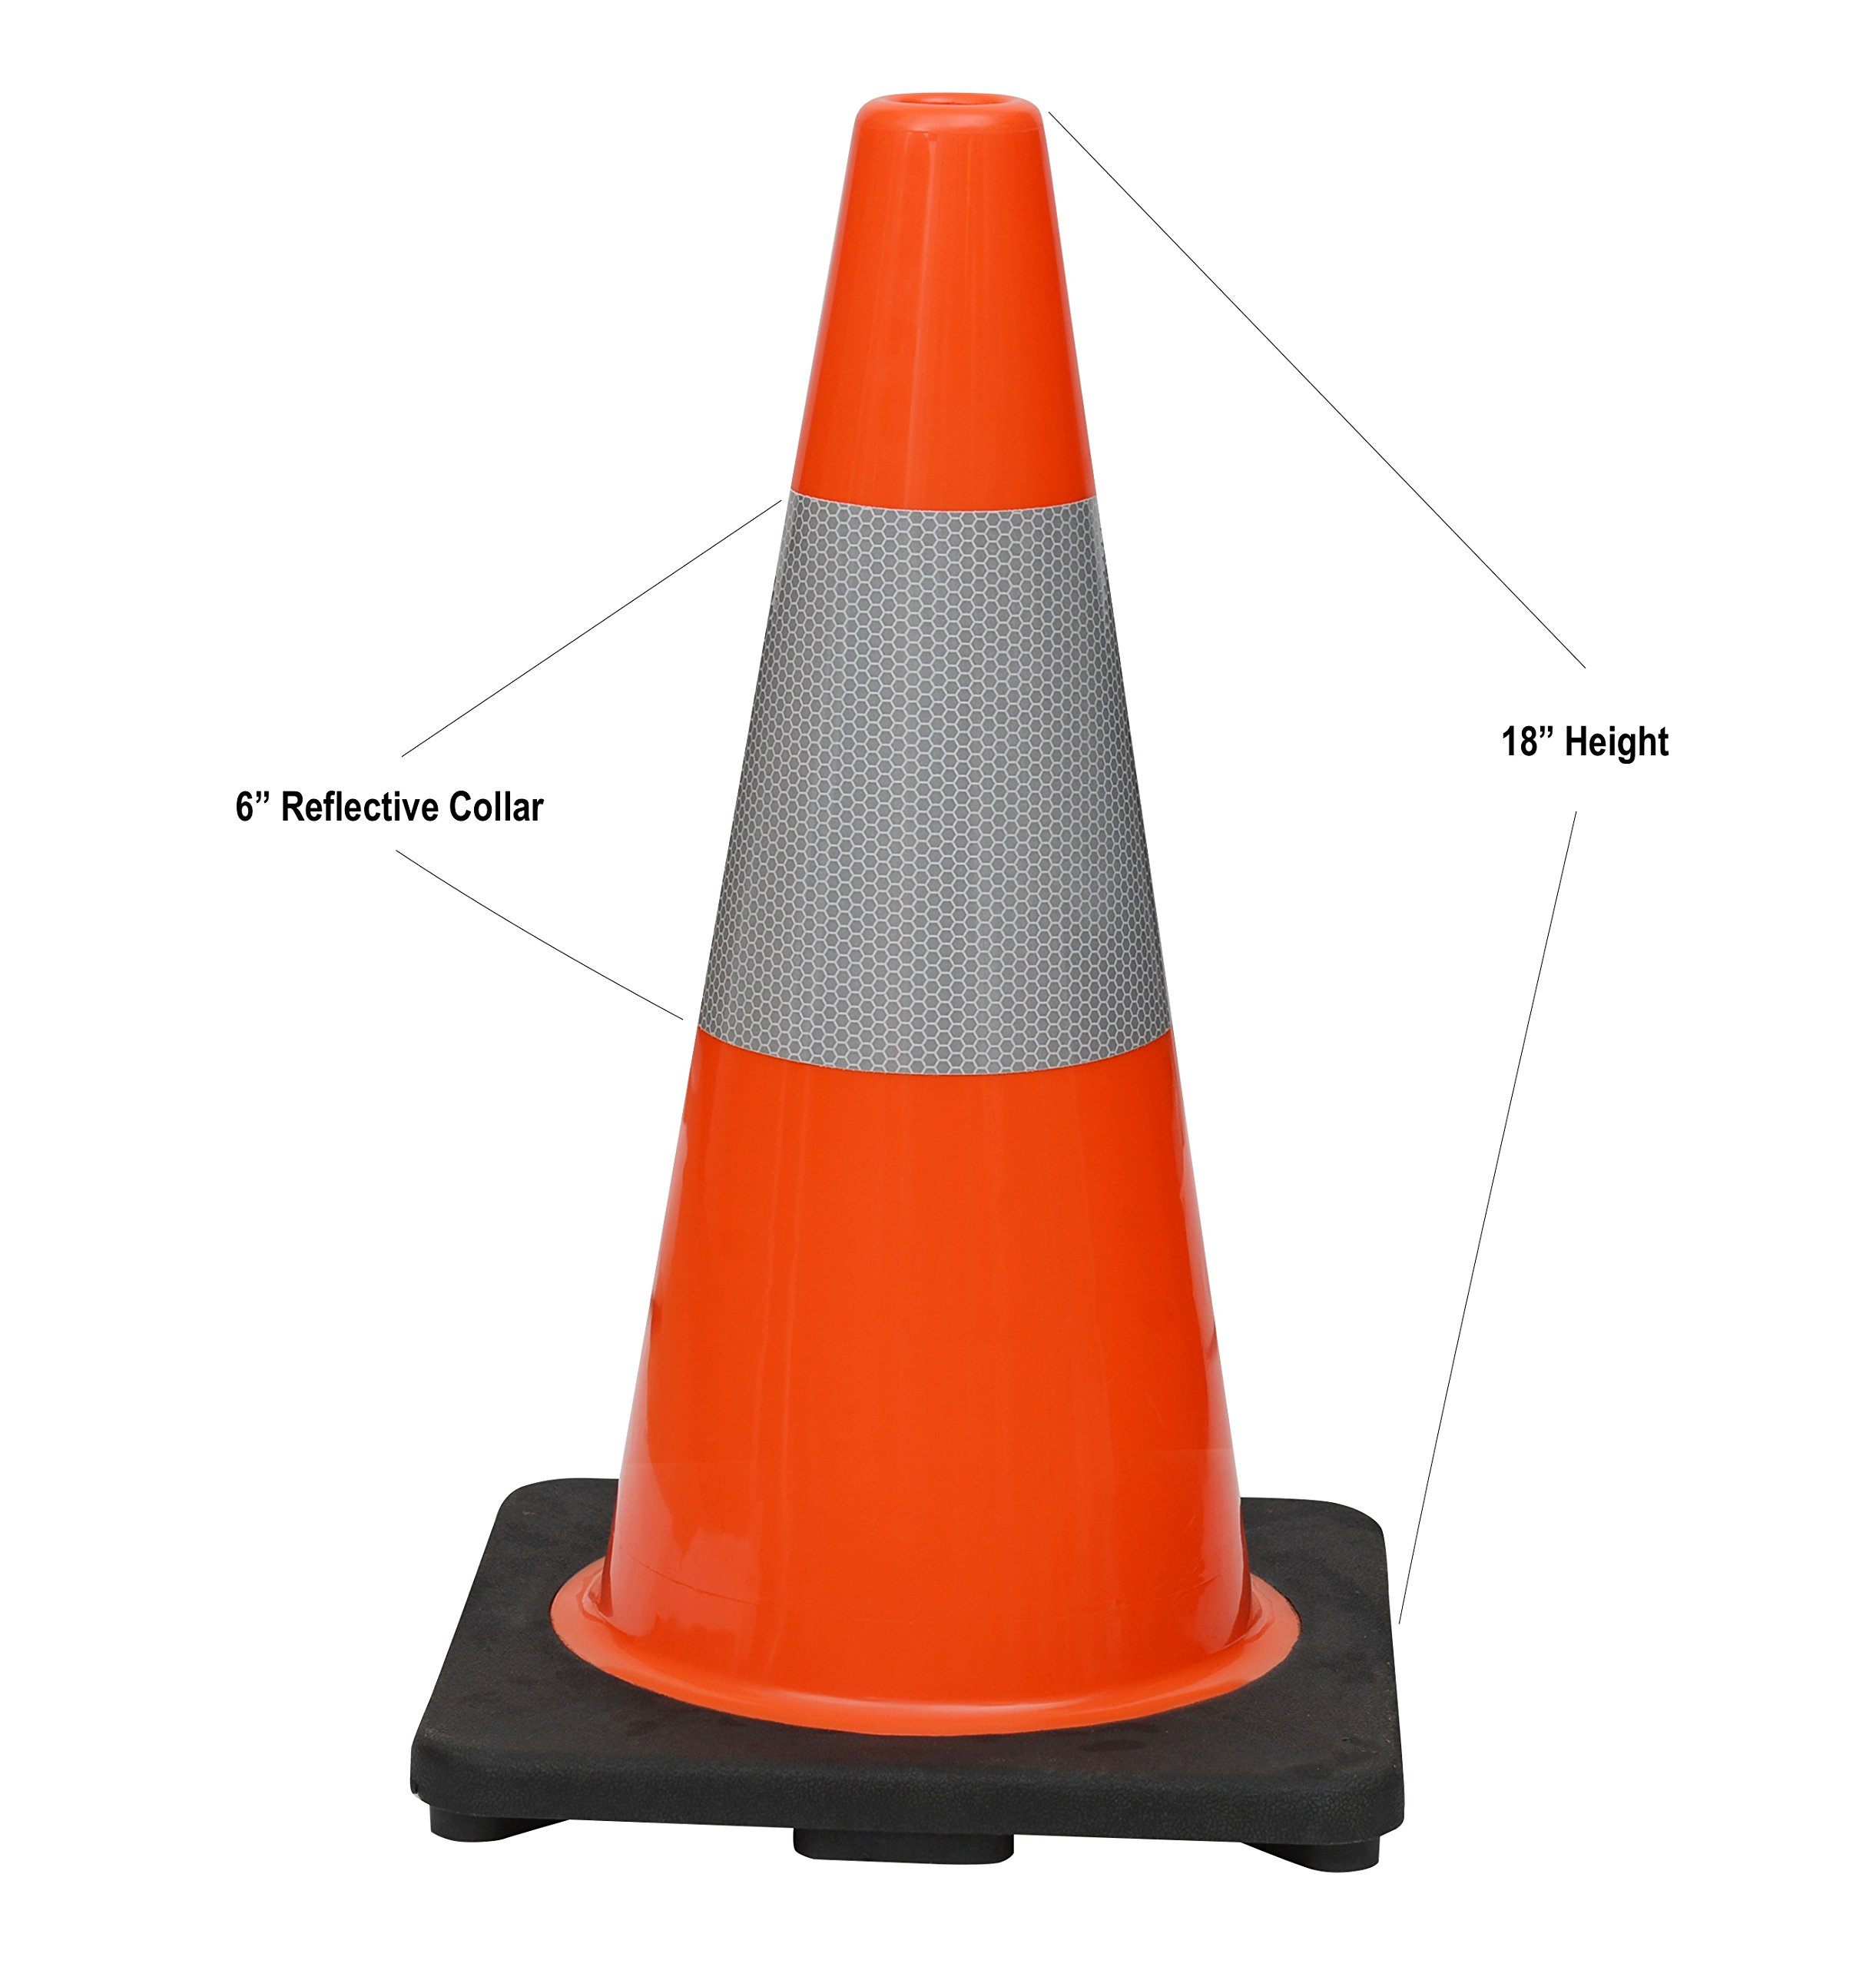 (Set of 6) CJ Safety 18'' Black Base Orange PVC Traffic Safety Cones with 6' Reflective Collar (6 Cones) by CJ Safety